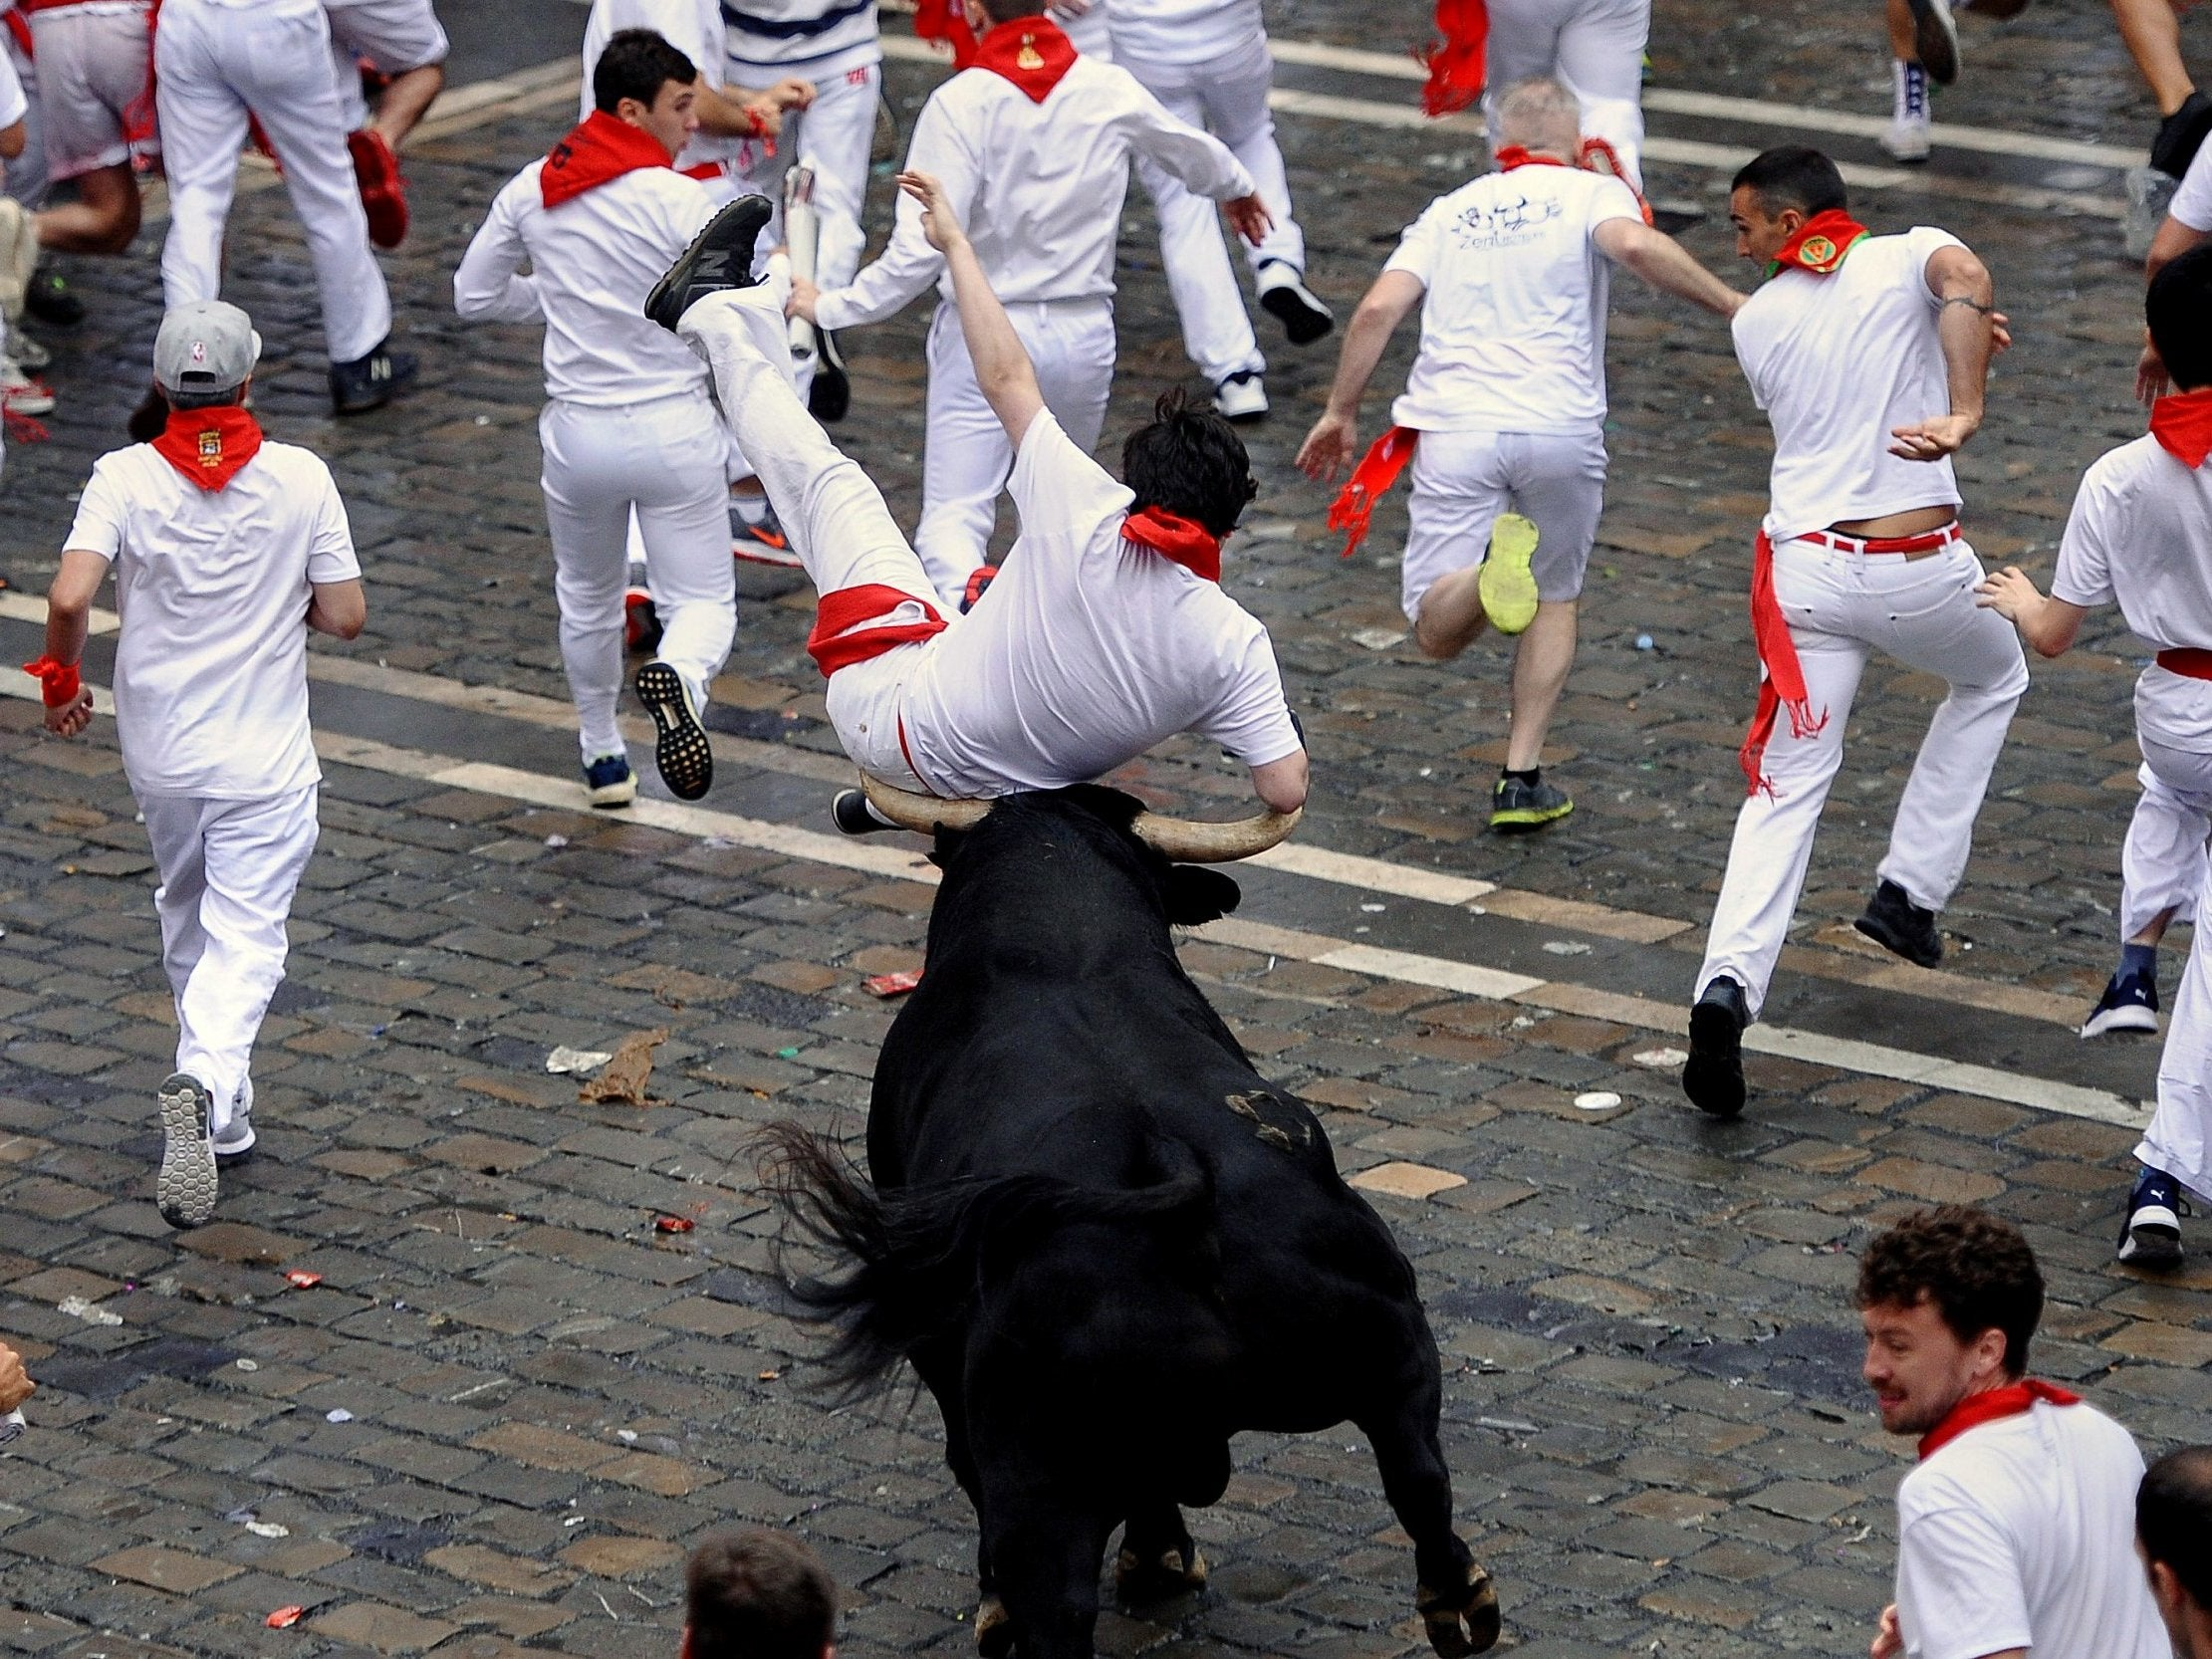 Pamplona bull running: Five wounded on first day of controversial Spanish festival